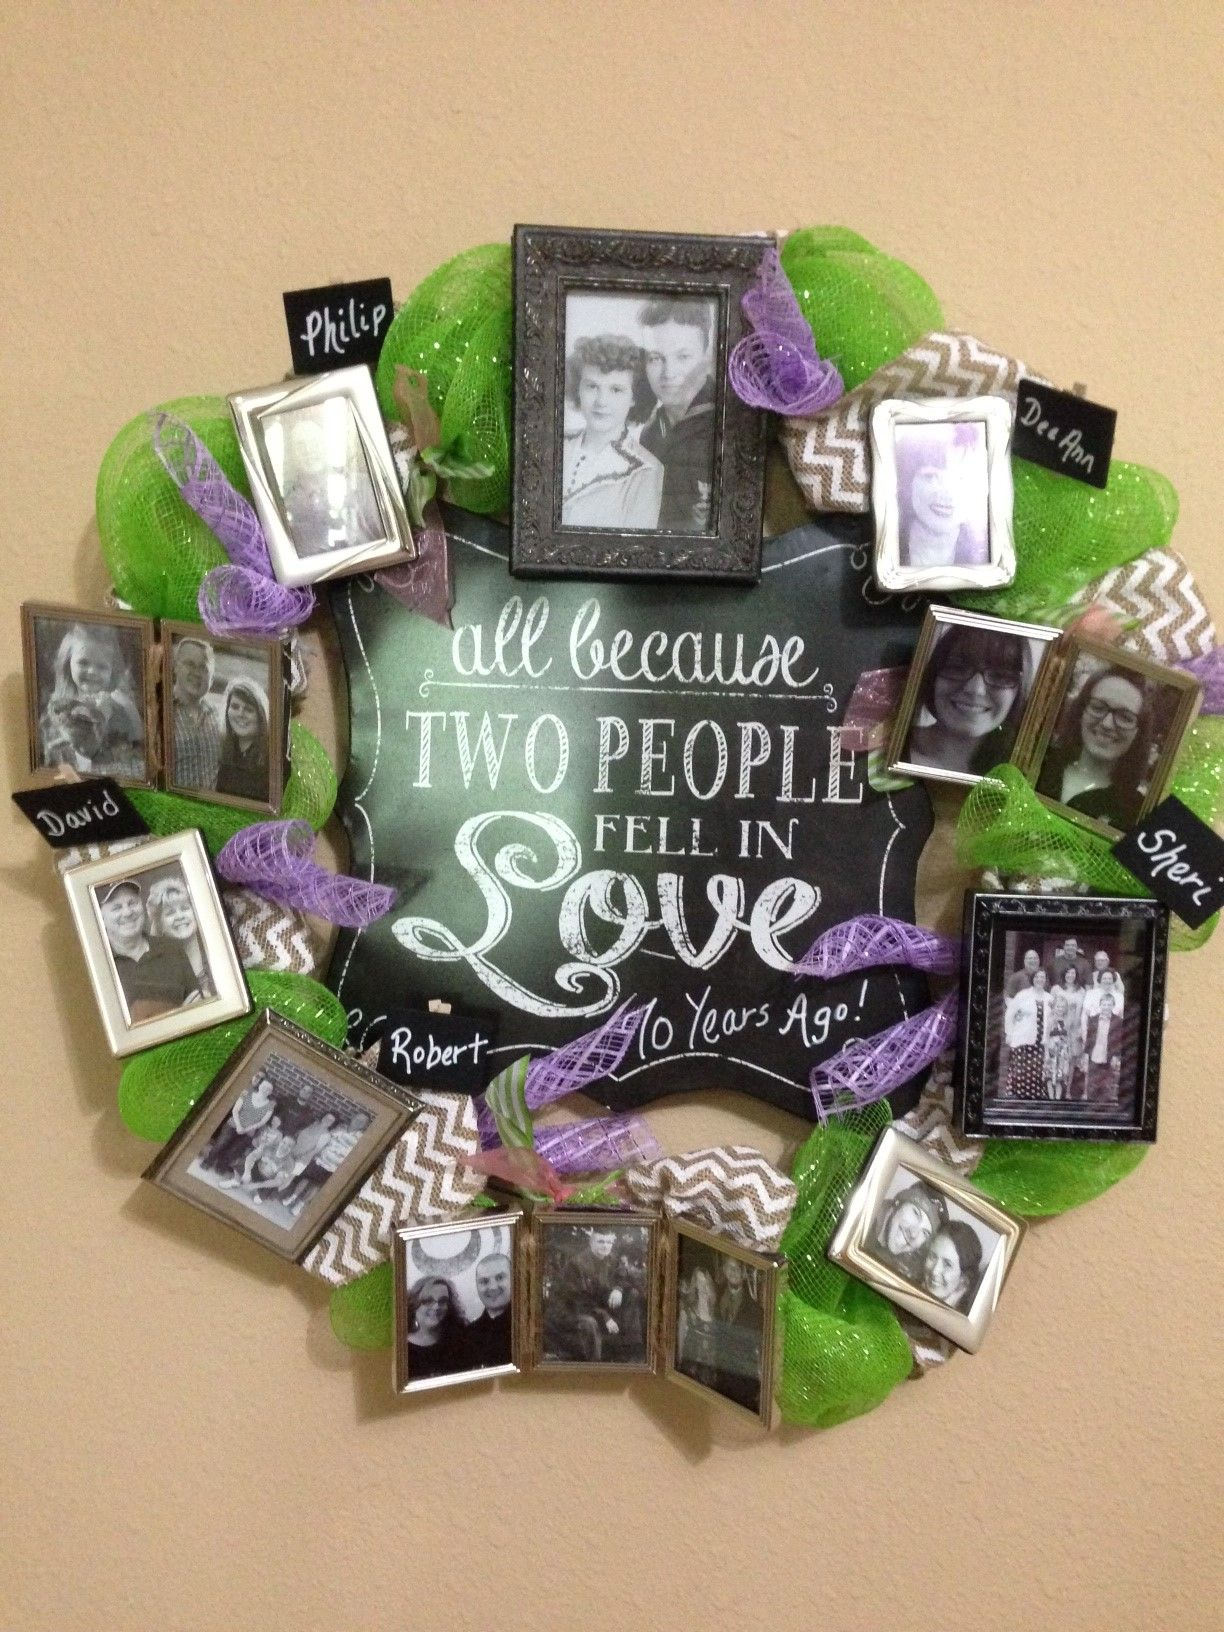 A wreath I made for my wonderful second parents' 70th